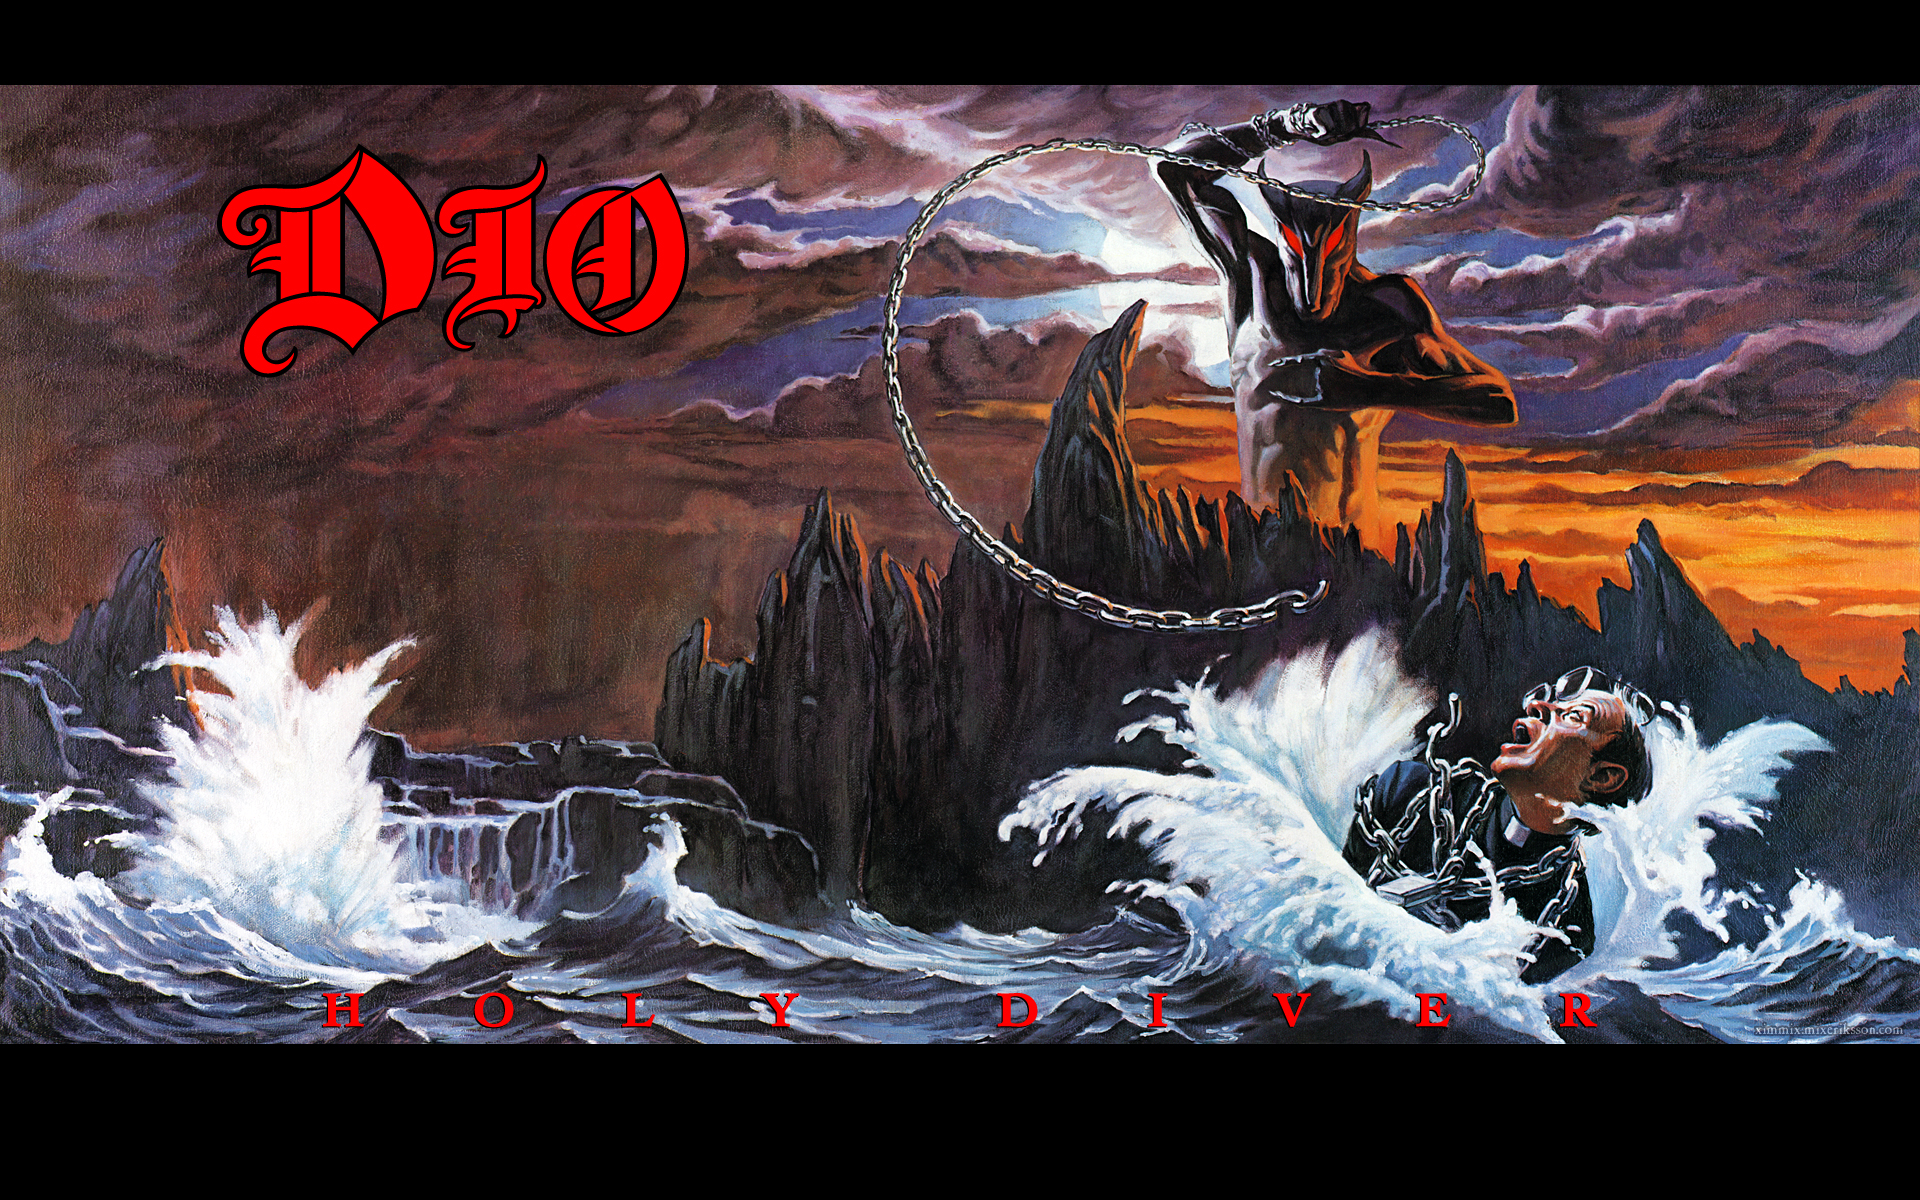 Holy Diver refers the priest falling into the water on the album's cover.